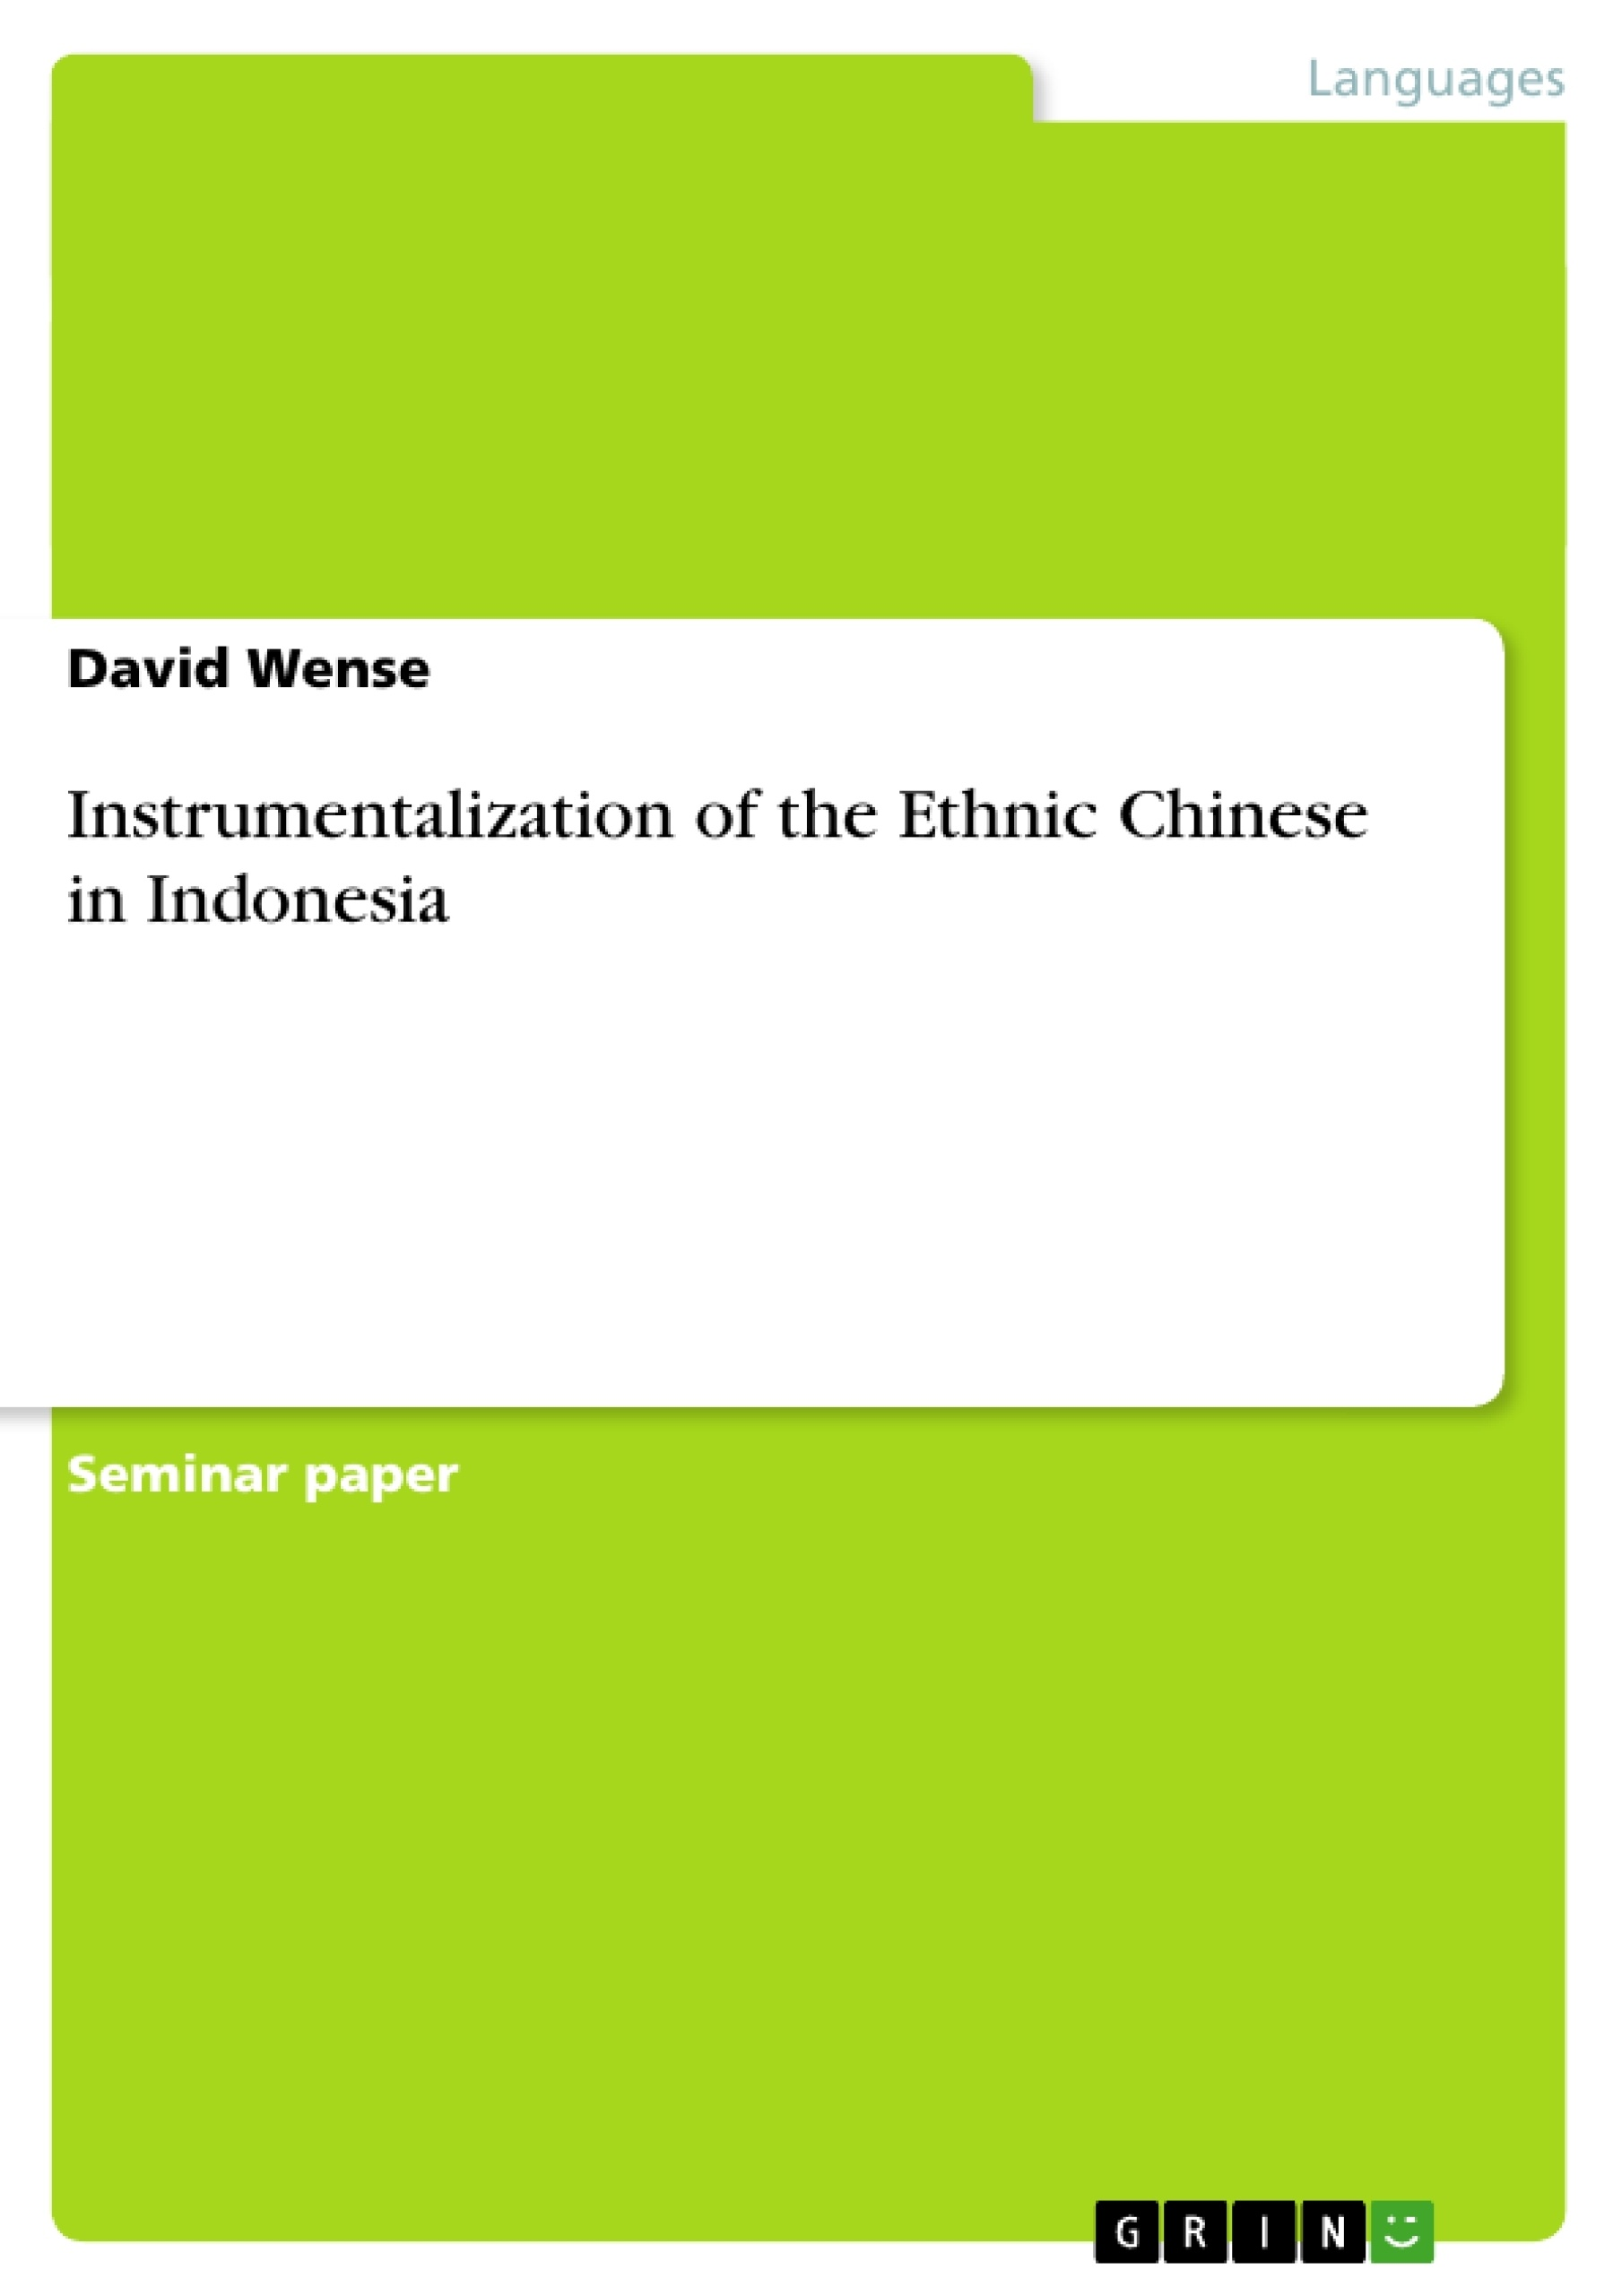 Title: Instrumentalization of the Ethnic Chinese in Indonesia